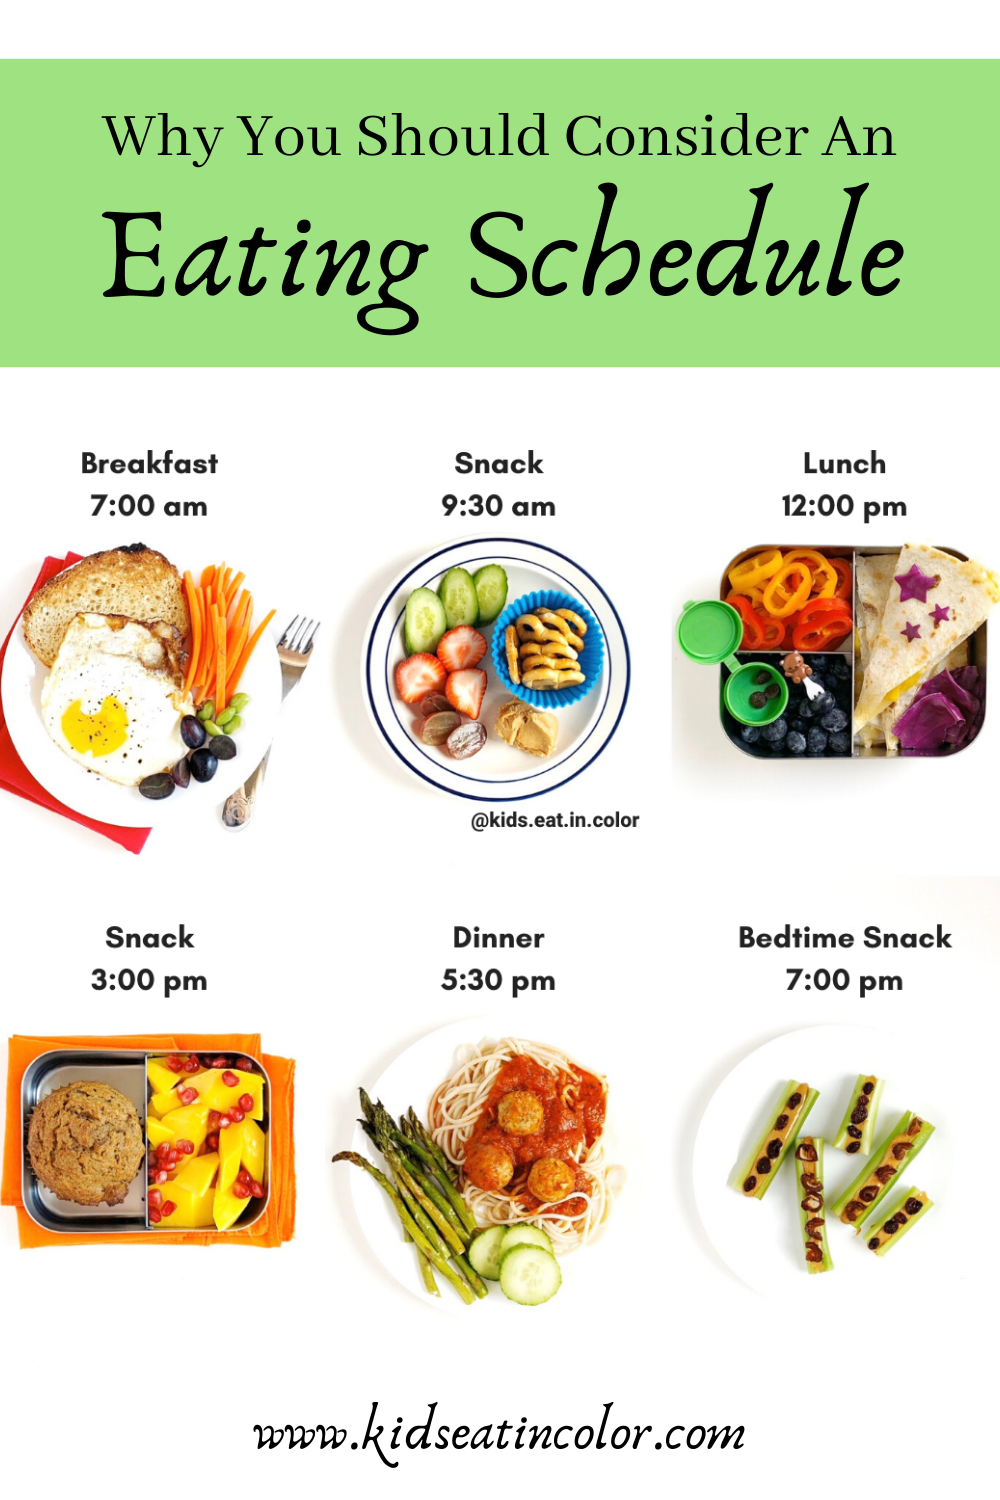 Eating Schedules Help Picky Eaters Nutrition For Kids Healthy Daily Meals Eating Schedule Healthy Eating Schedule